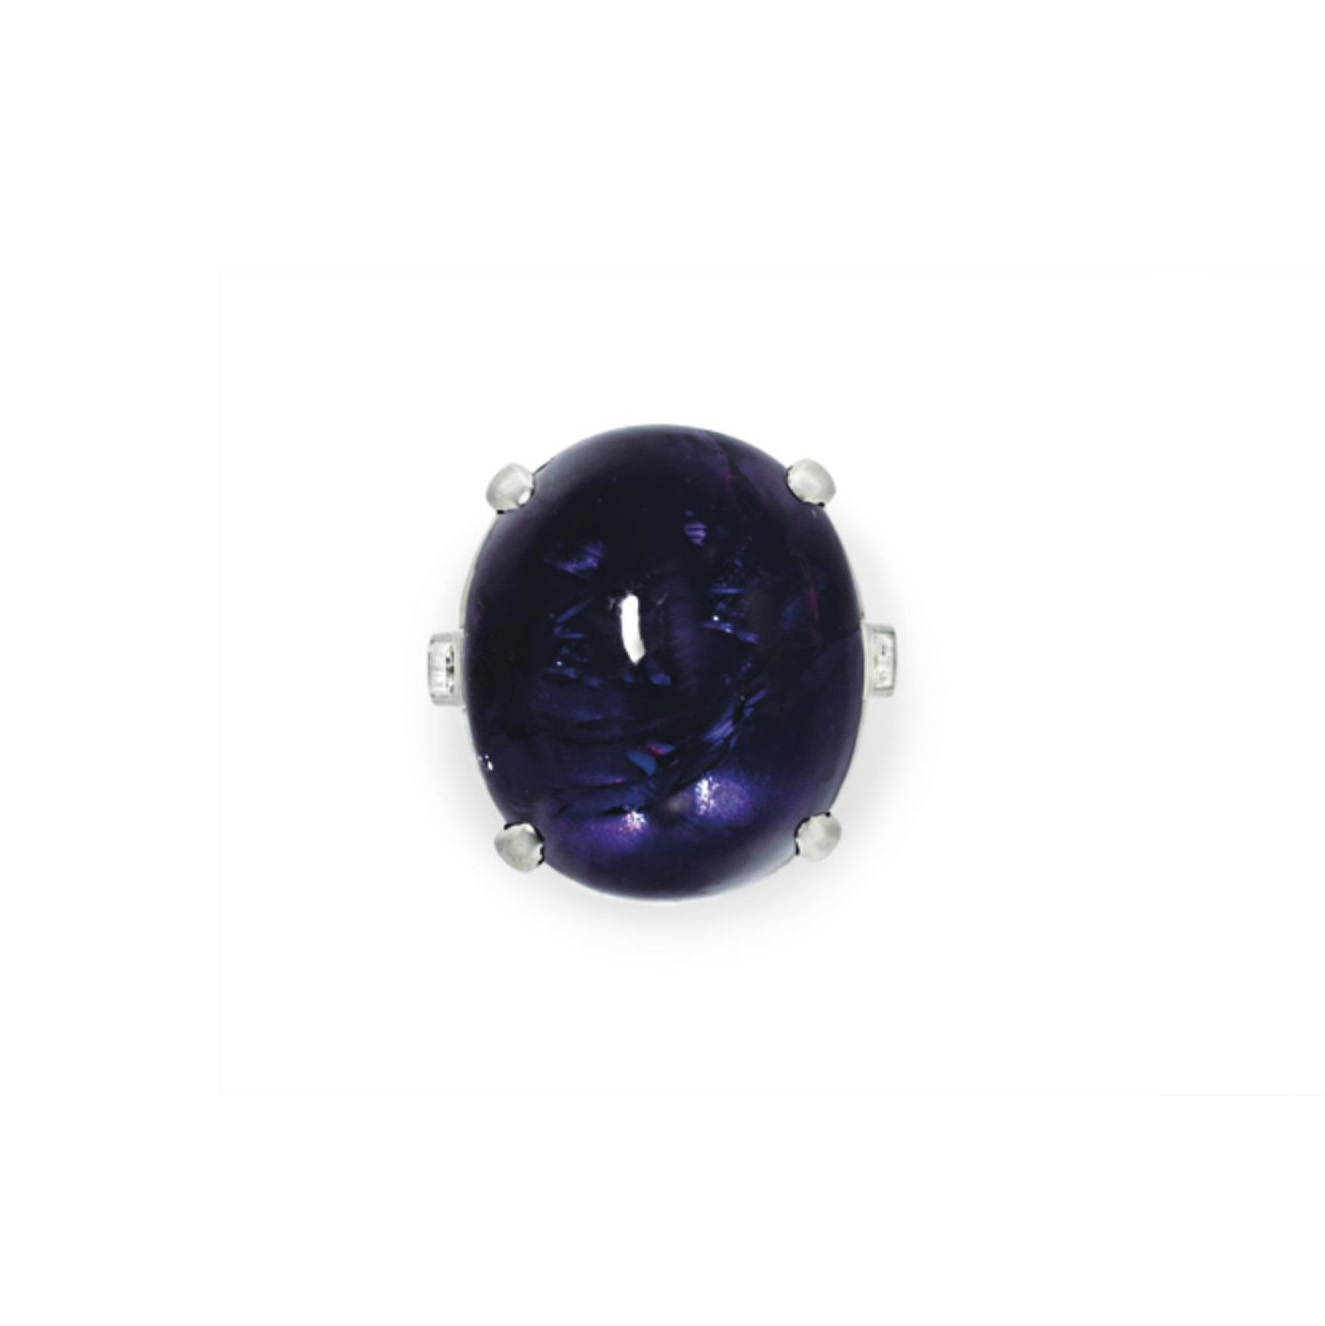 A PURPLE STAR SAPPHIRE AND DIA